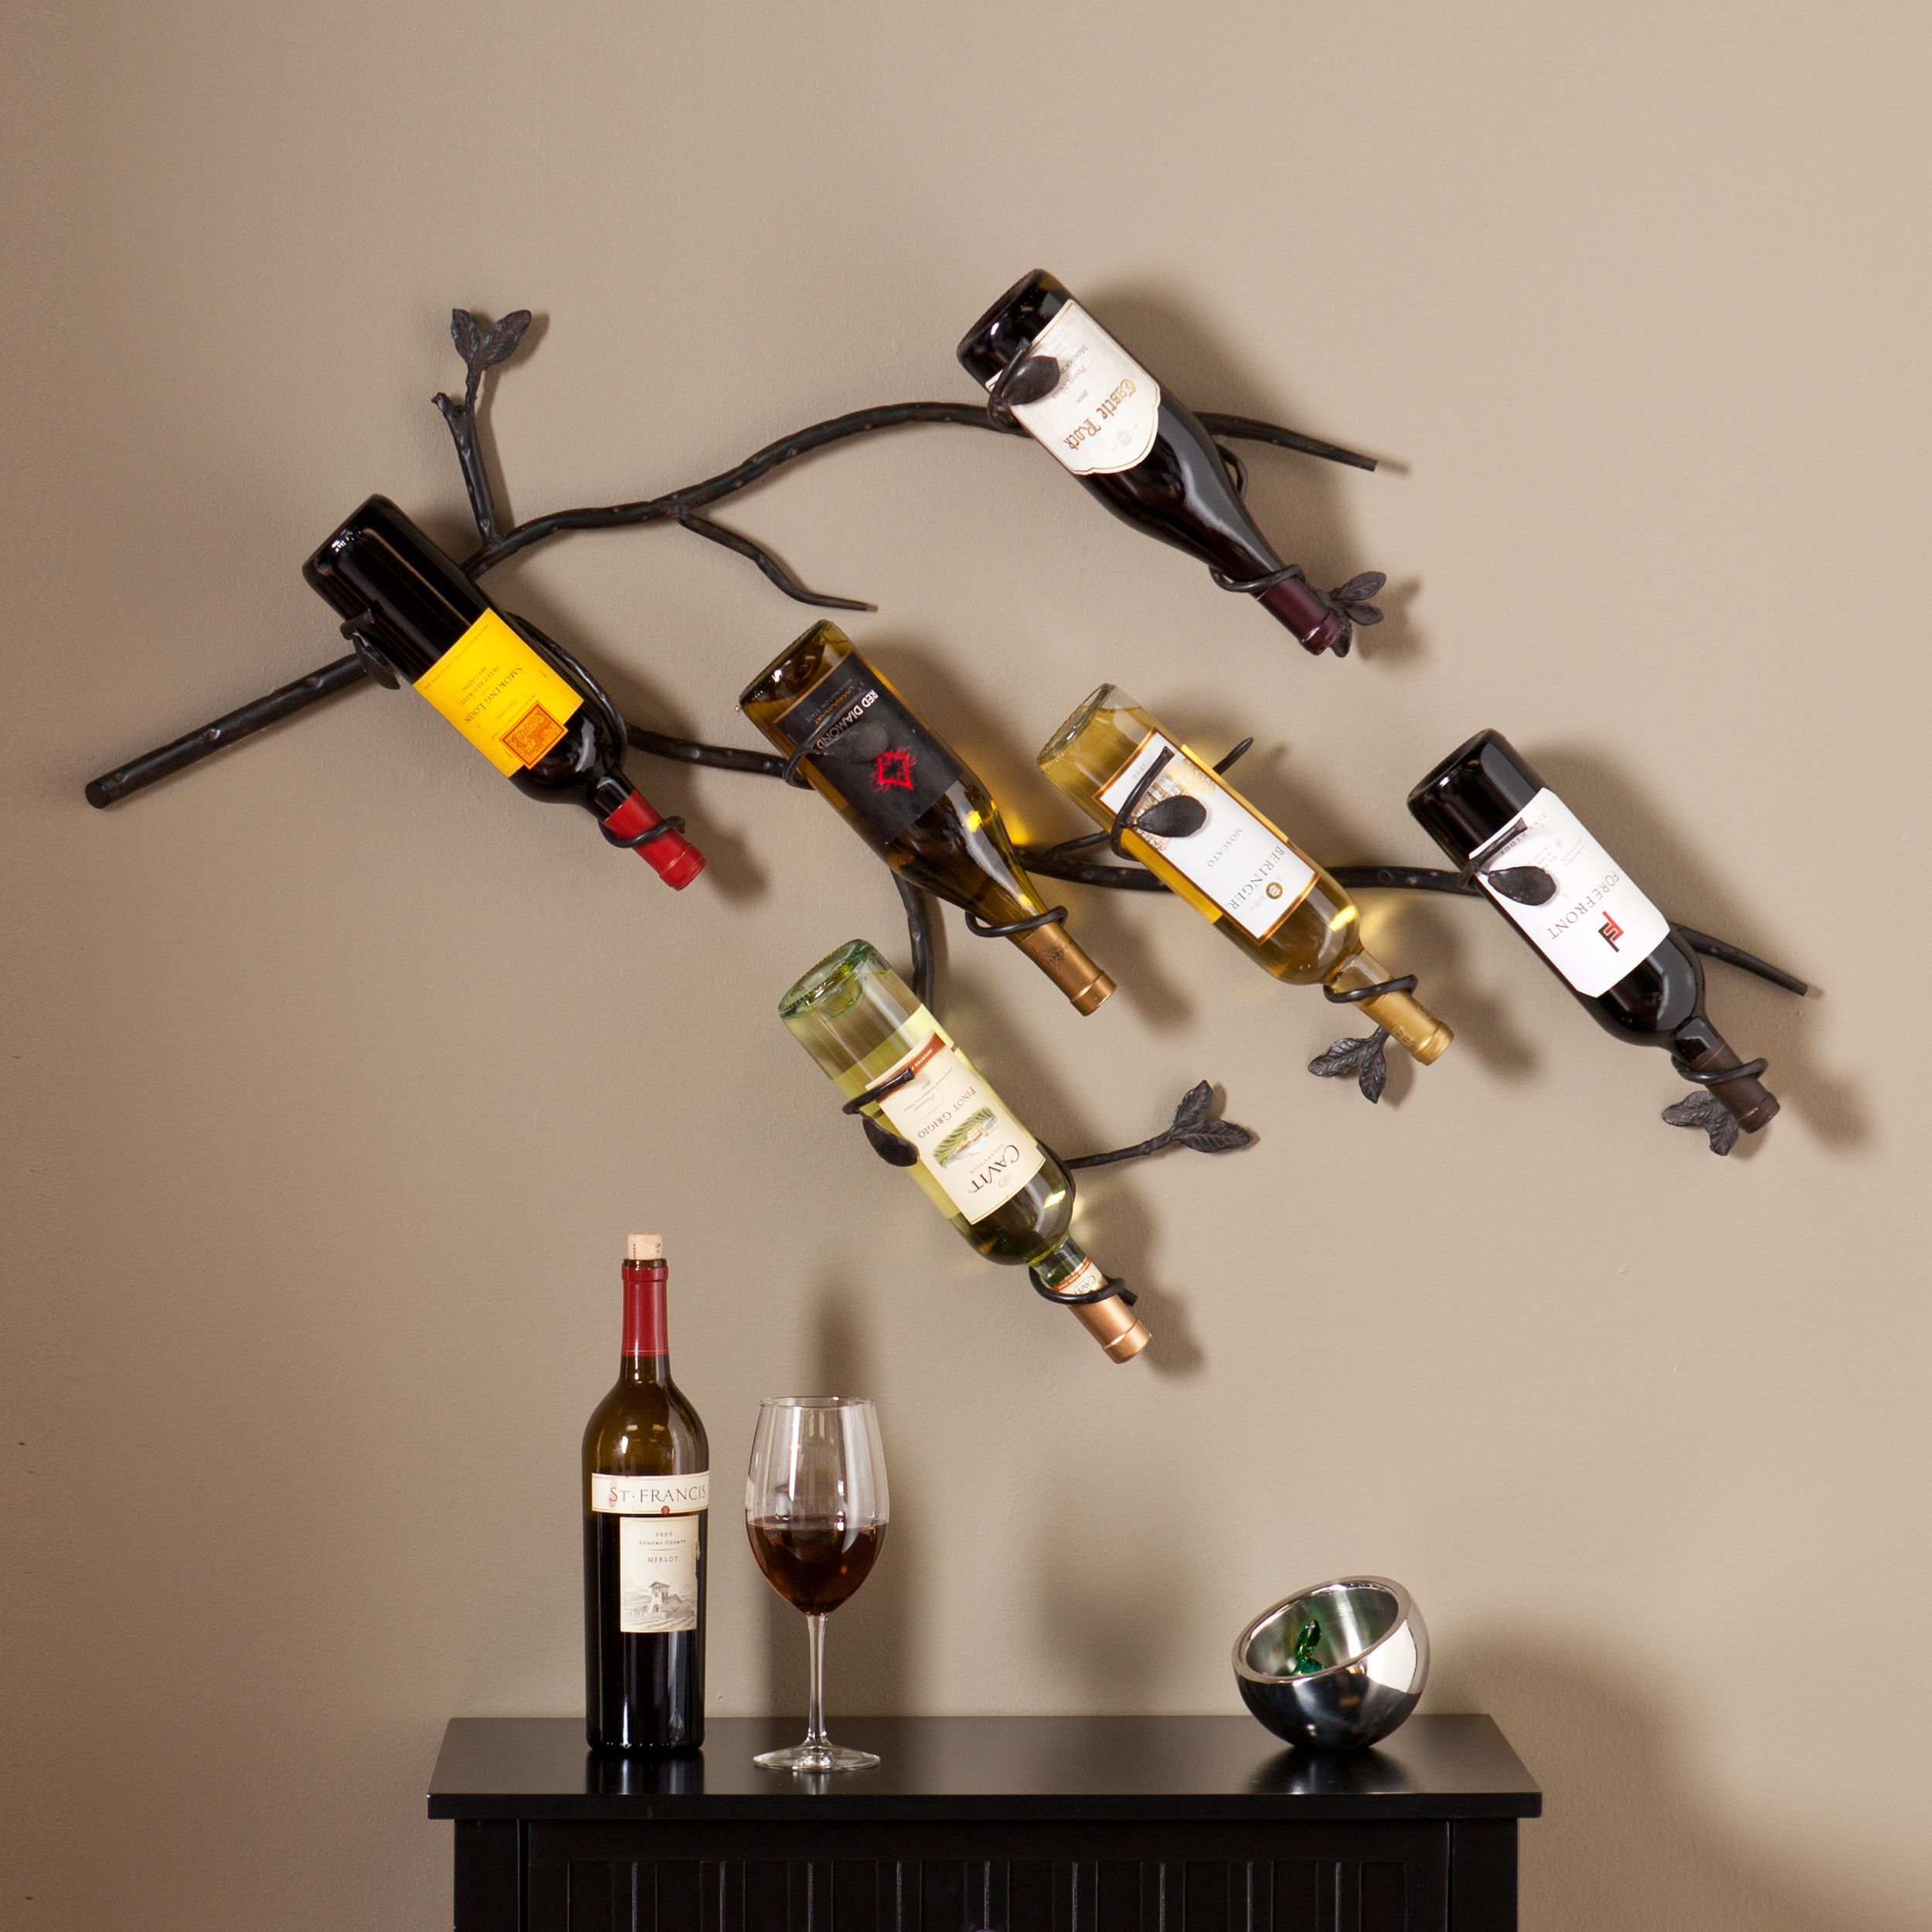 hanging ah racks sequeira wine world decor also warm menagerie state gray winerack rack phantasy mount about with images bottle plus mounted on iron wall